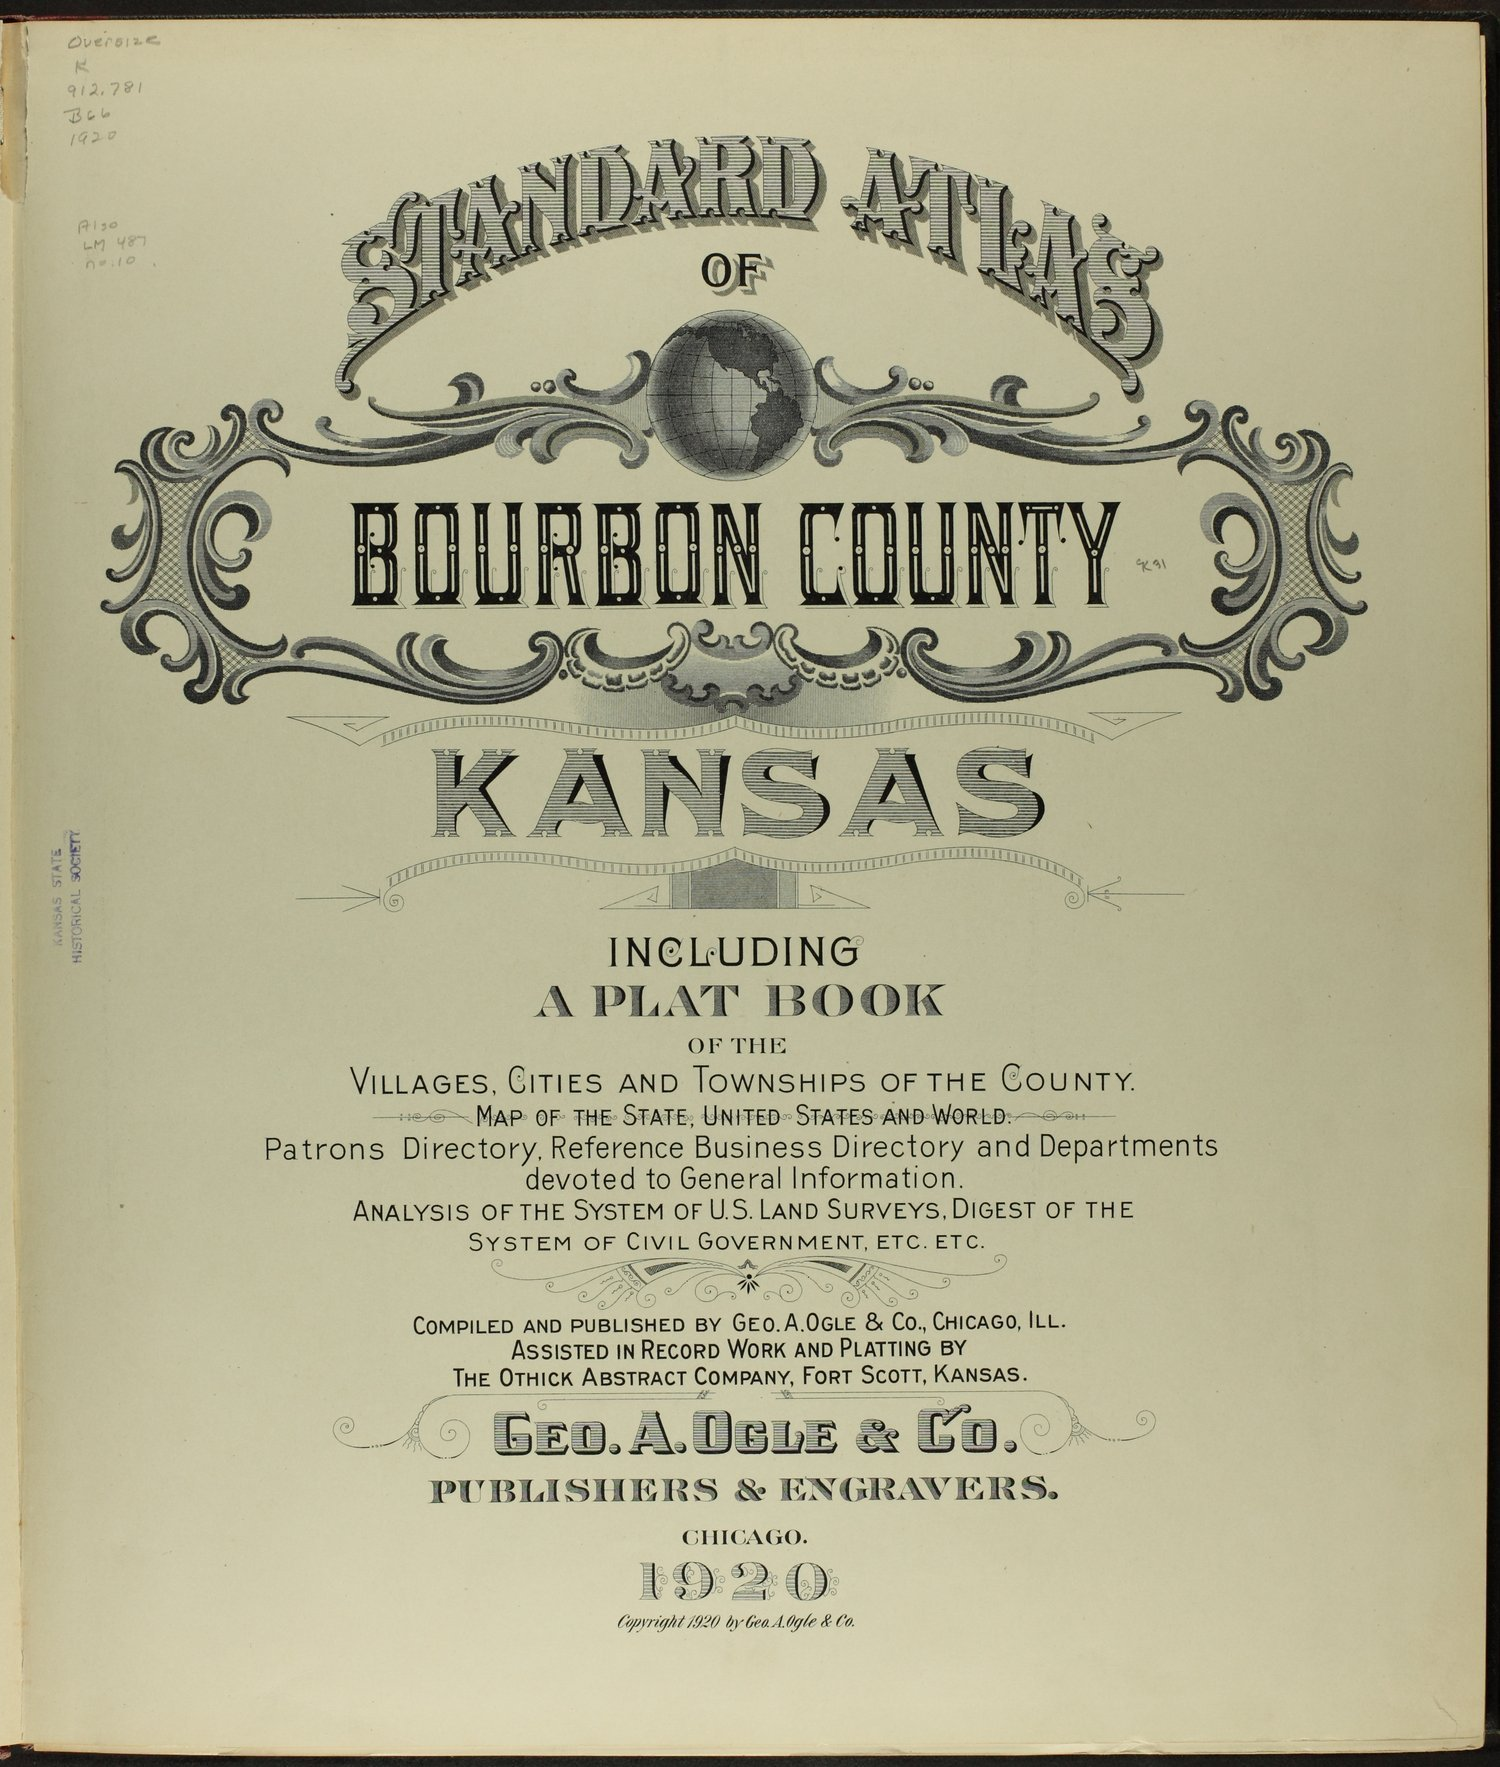 Standard atlas of Bourbon County, Kansas - Title Page